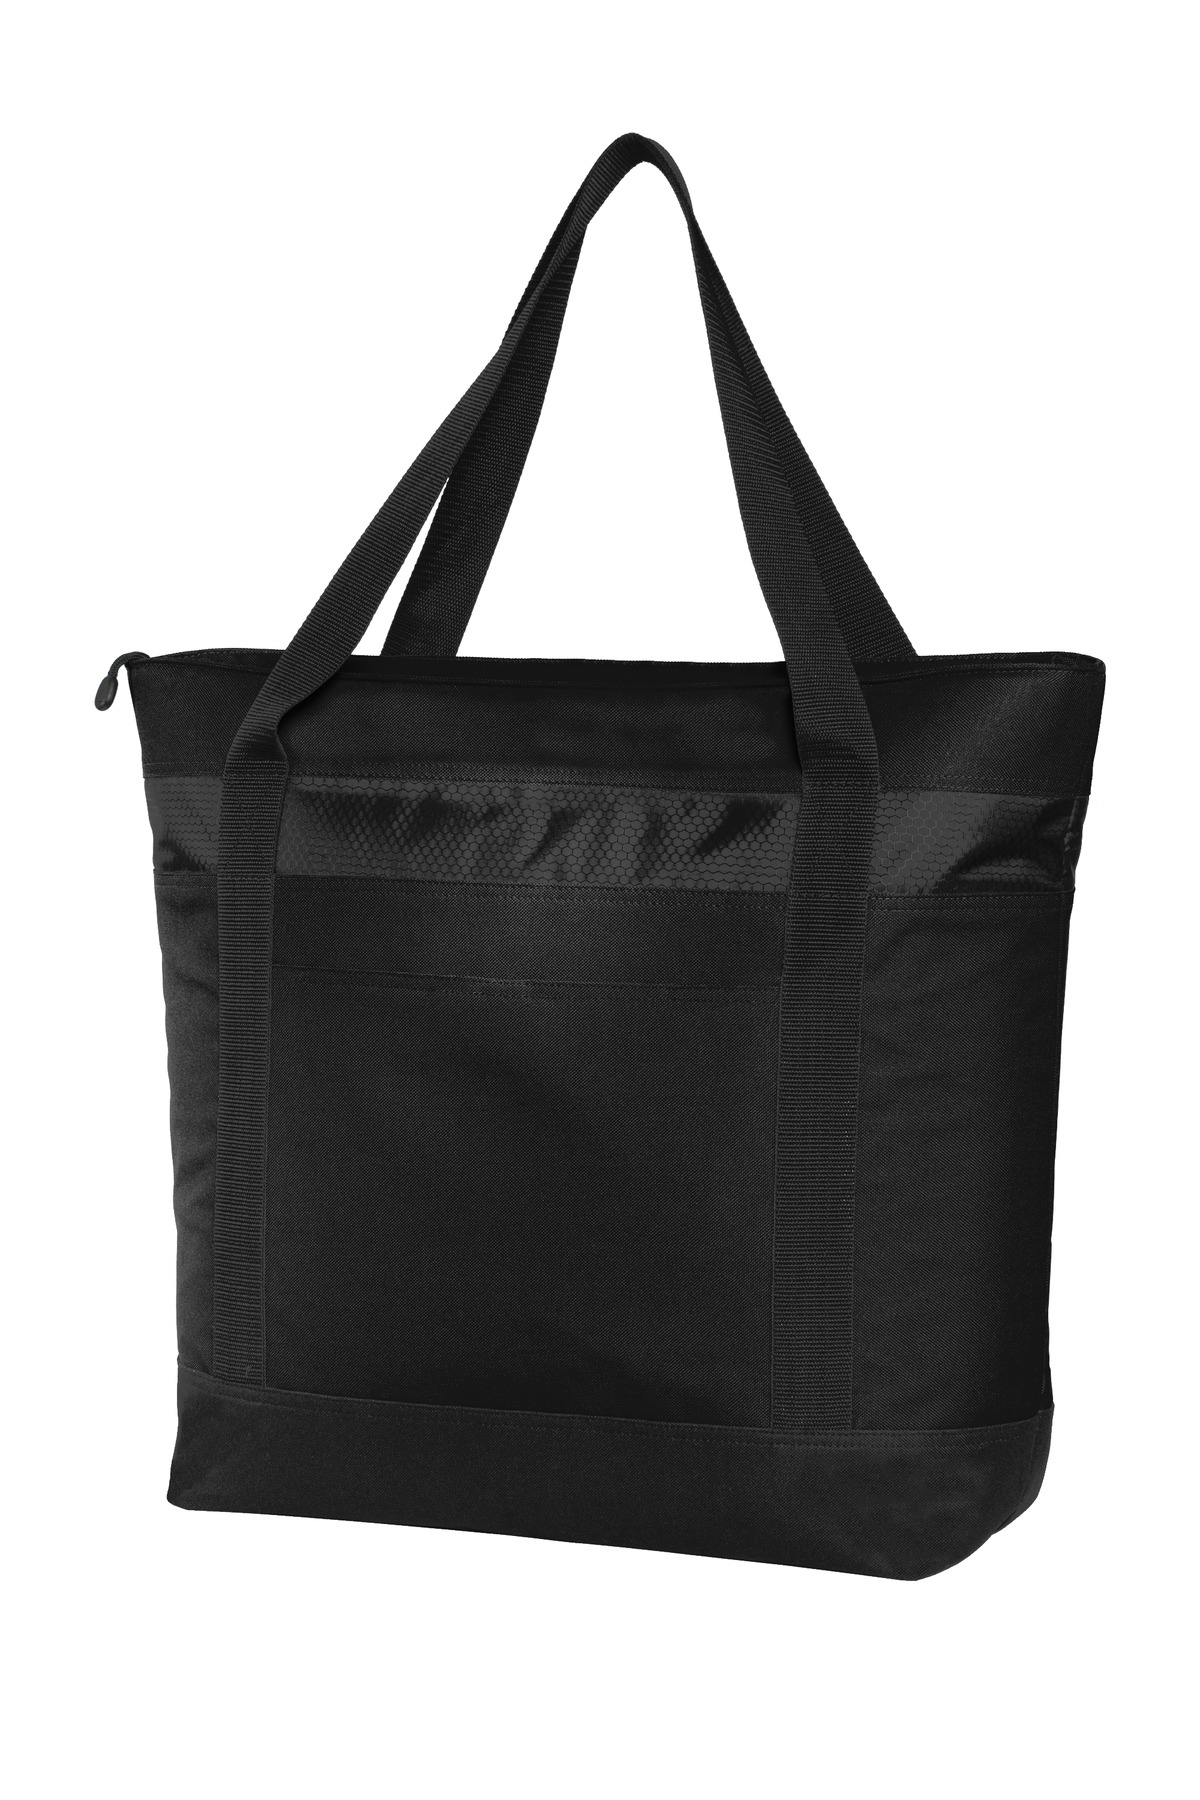 Port Authority ®  Large Tote Cooler. BG527 - Black/ Black